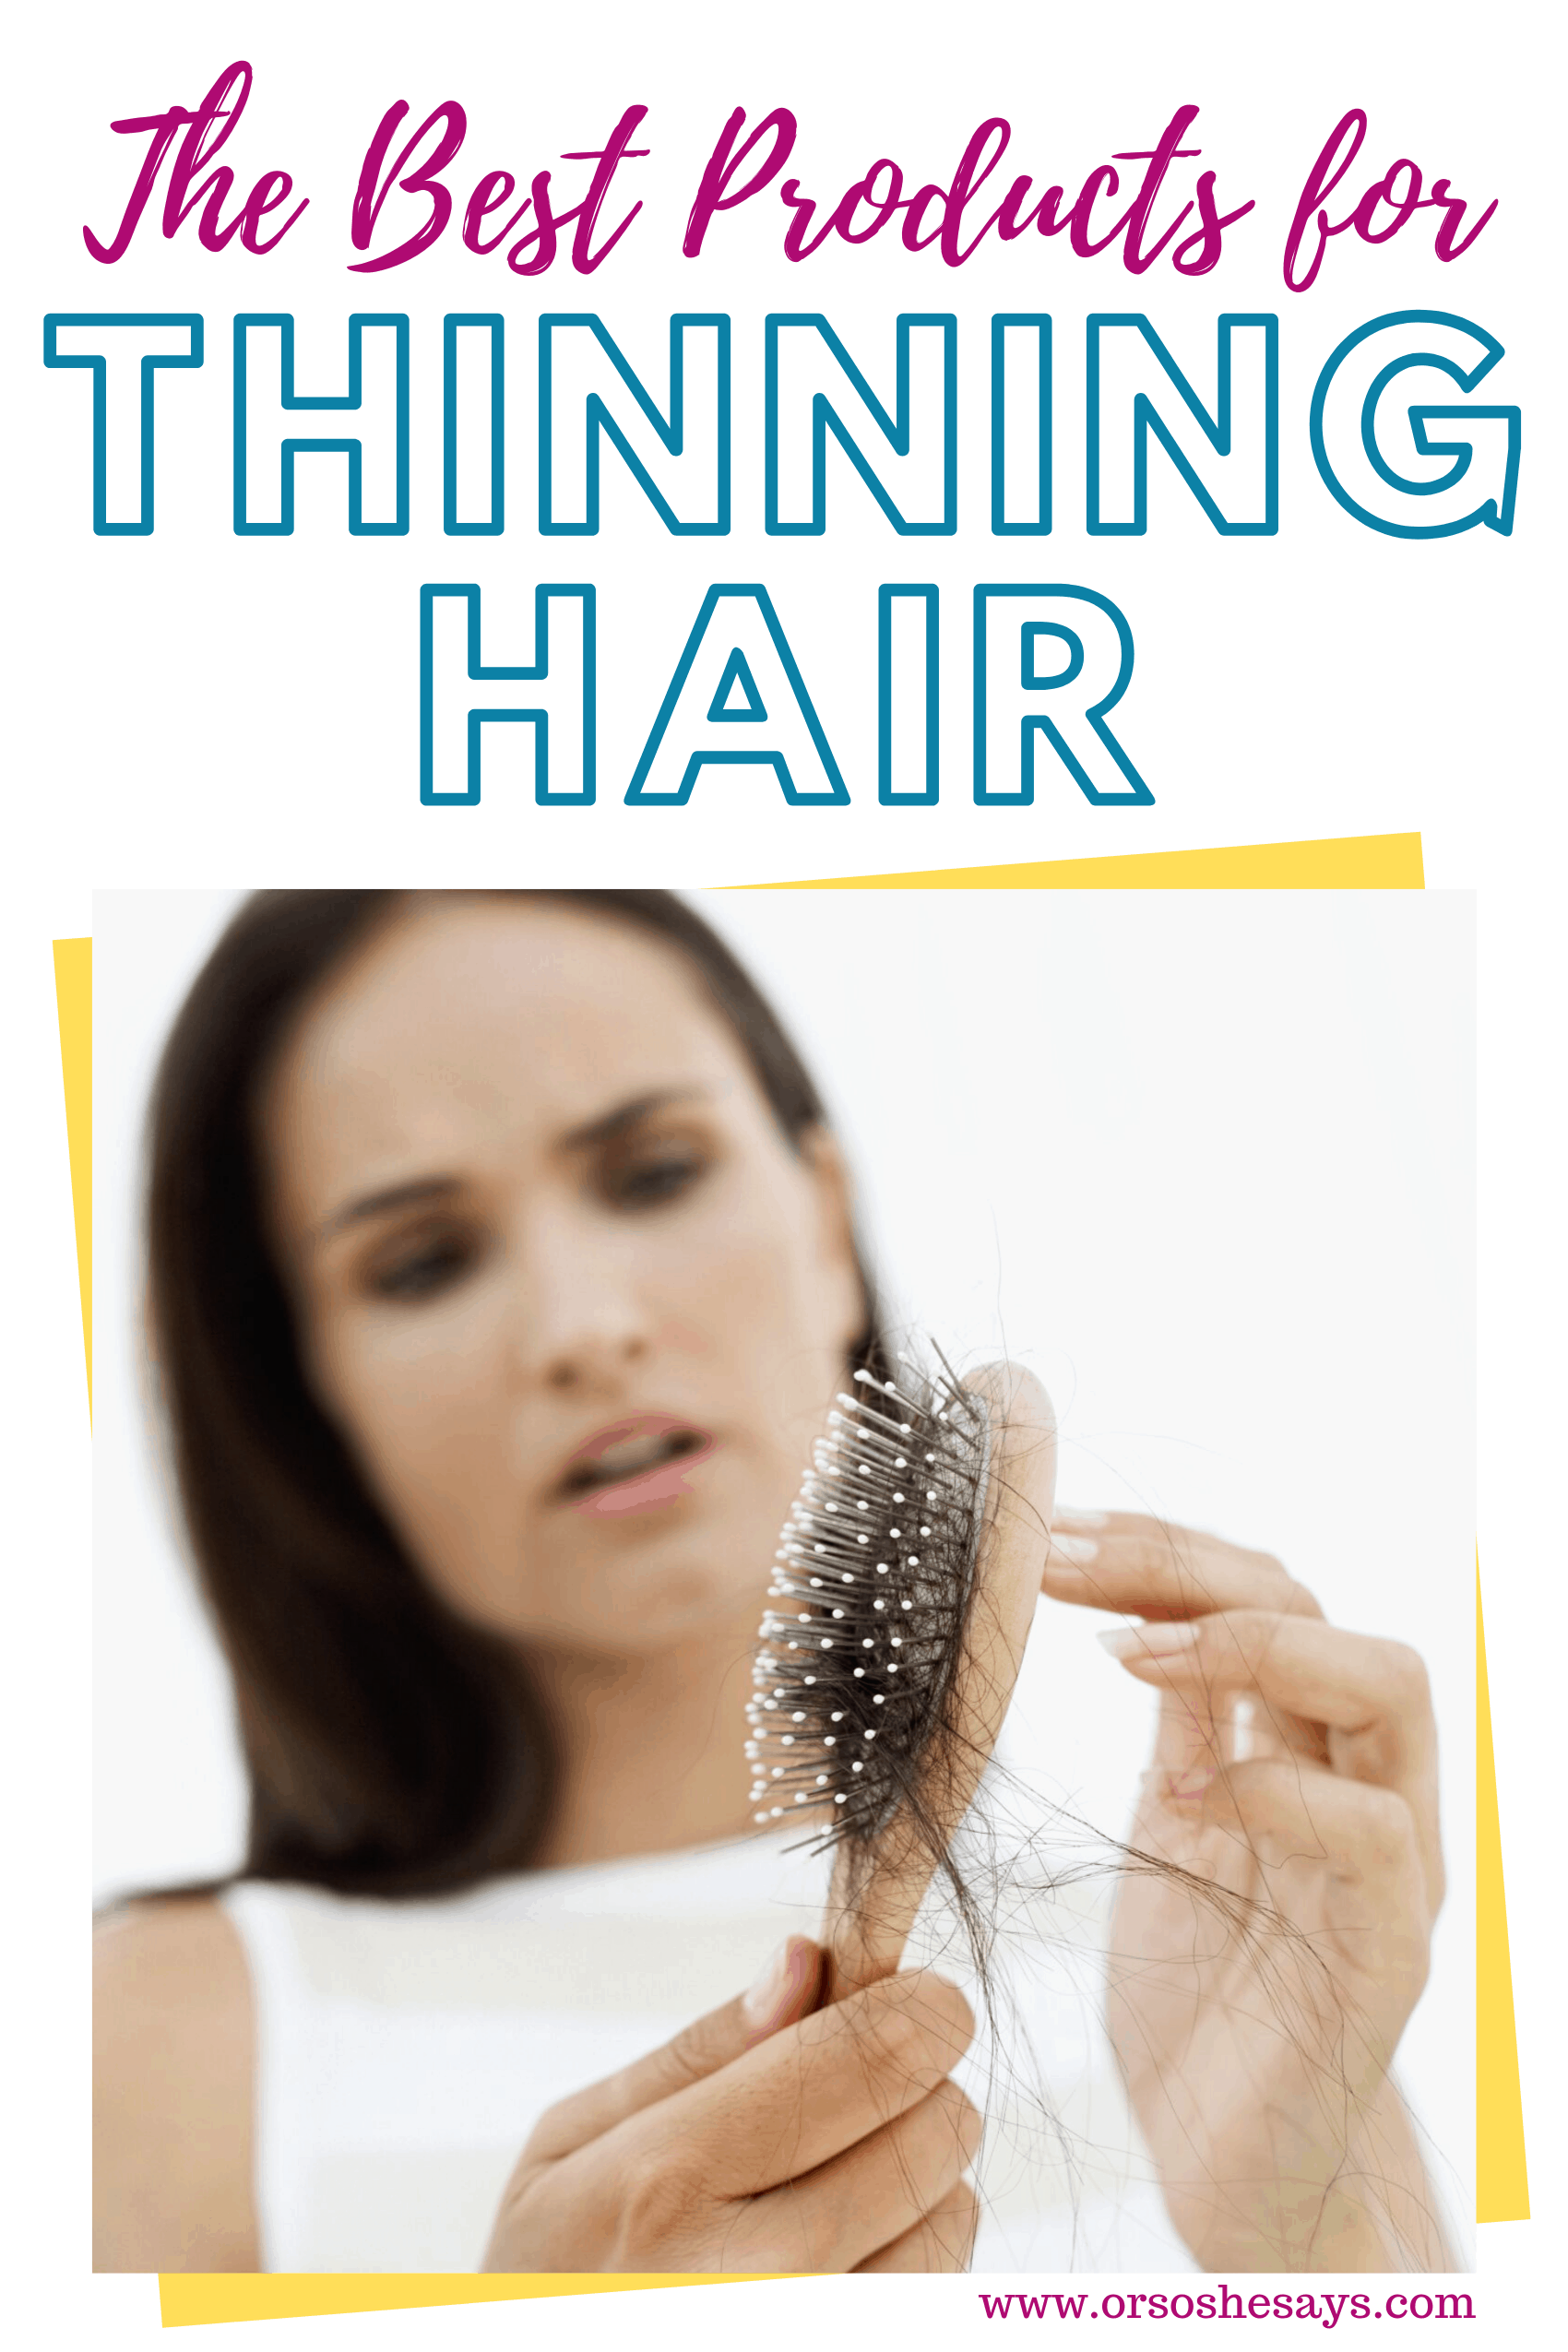 products for thinning hair